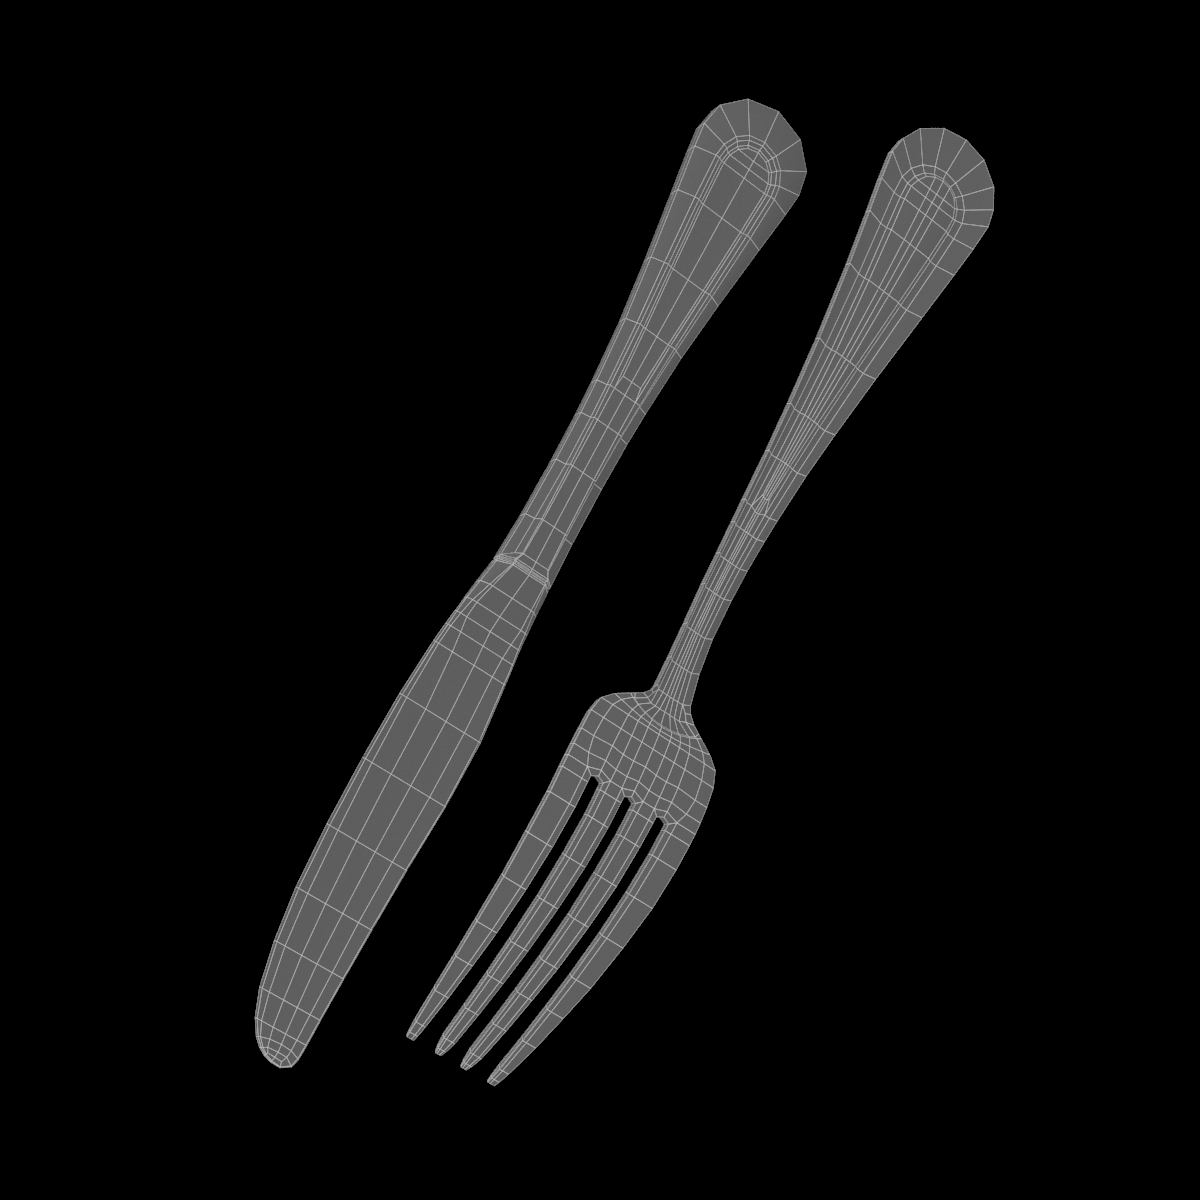 table dinner knife and fork classic cutlery 3d model 3ds max fbx c4d ma mb obj 284044